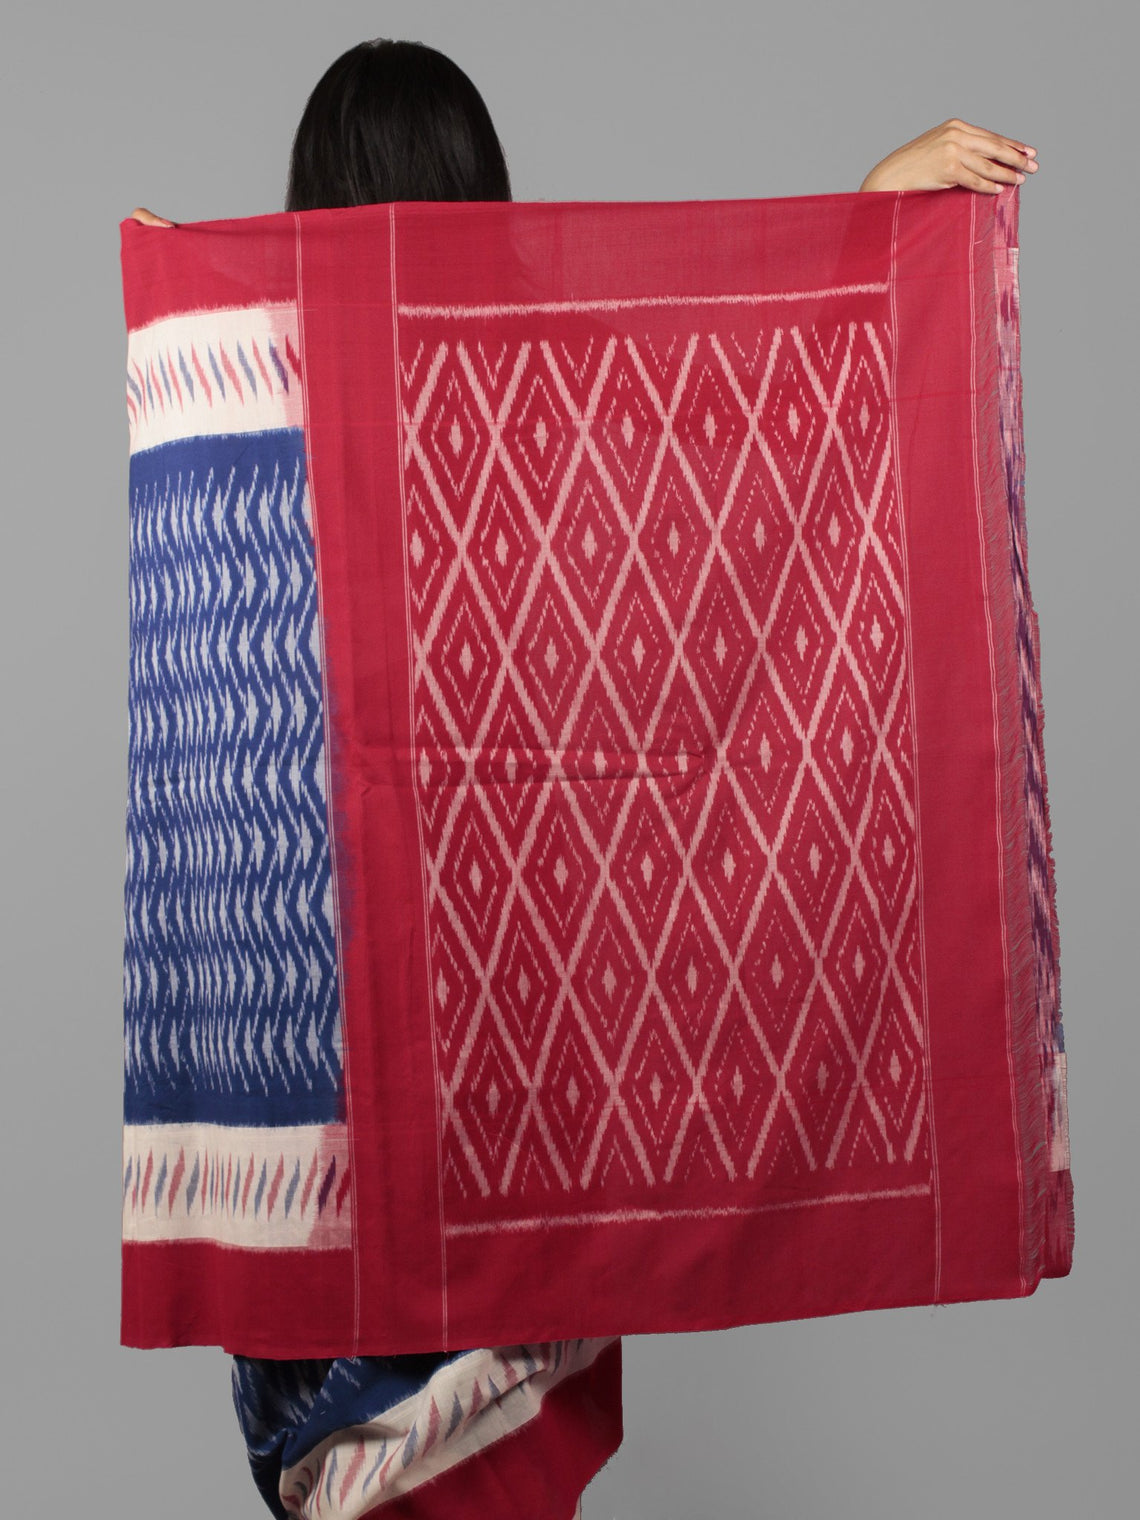 Royal Blue Ivory Red Ikat Handwoven Pochampally Mercerized Cotton Saree - S031702022